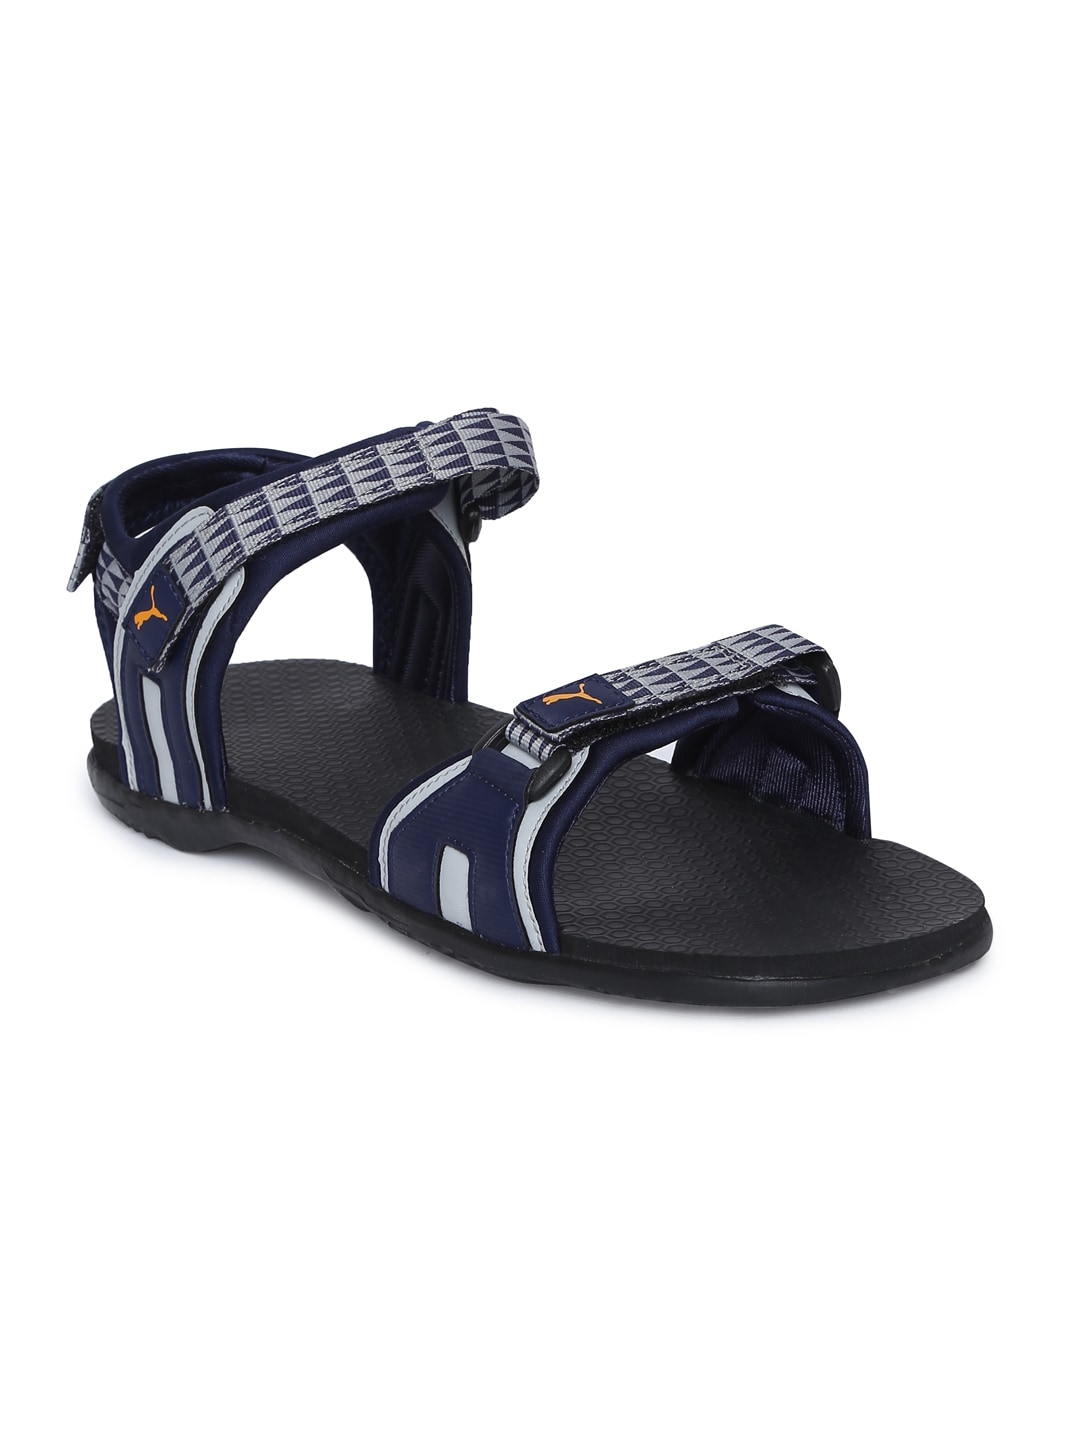 9033cc17953e Sandals For Men - Buy Men Sandals Online in India